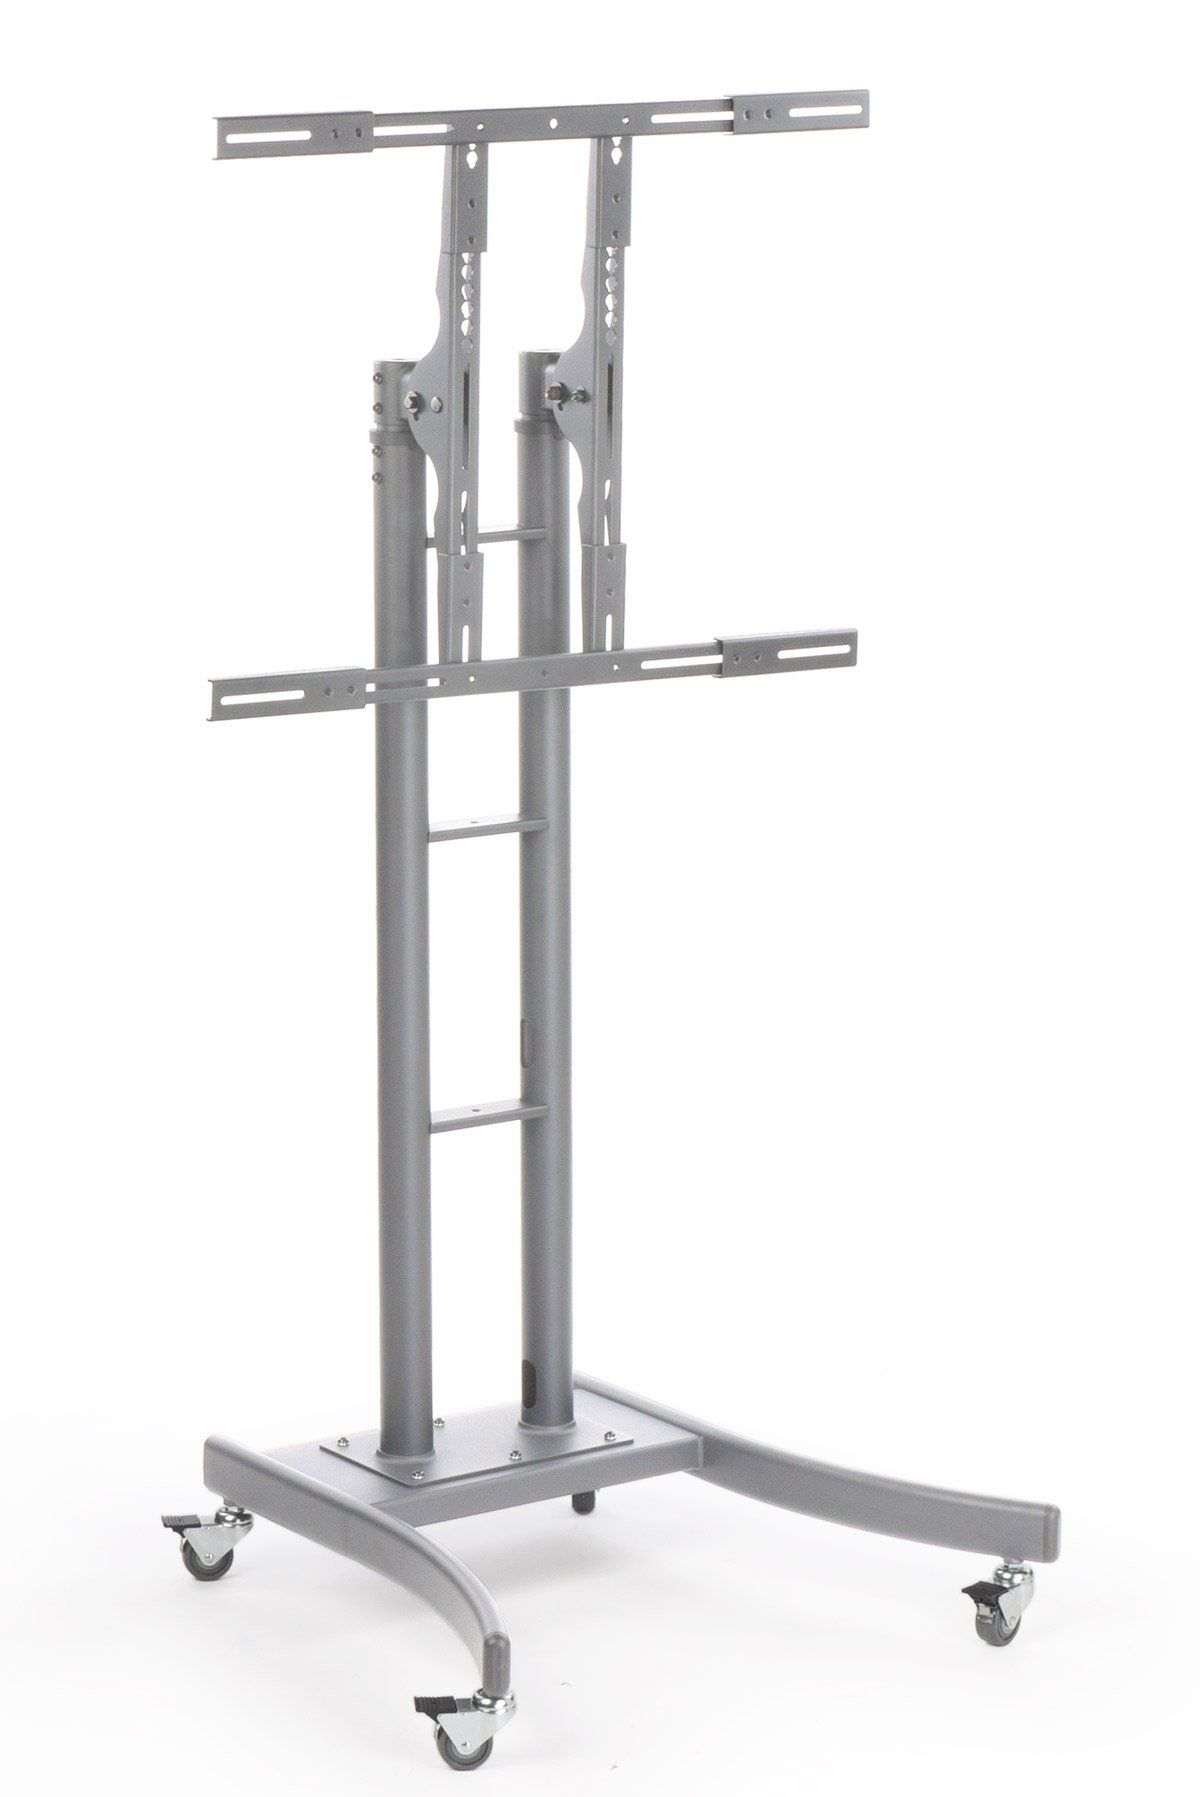 Amazon.com: Portable TV Stand with Wheels for LCD, Plasma or LED TVs ...